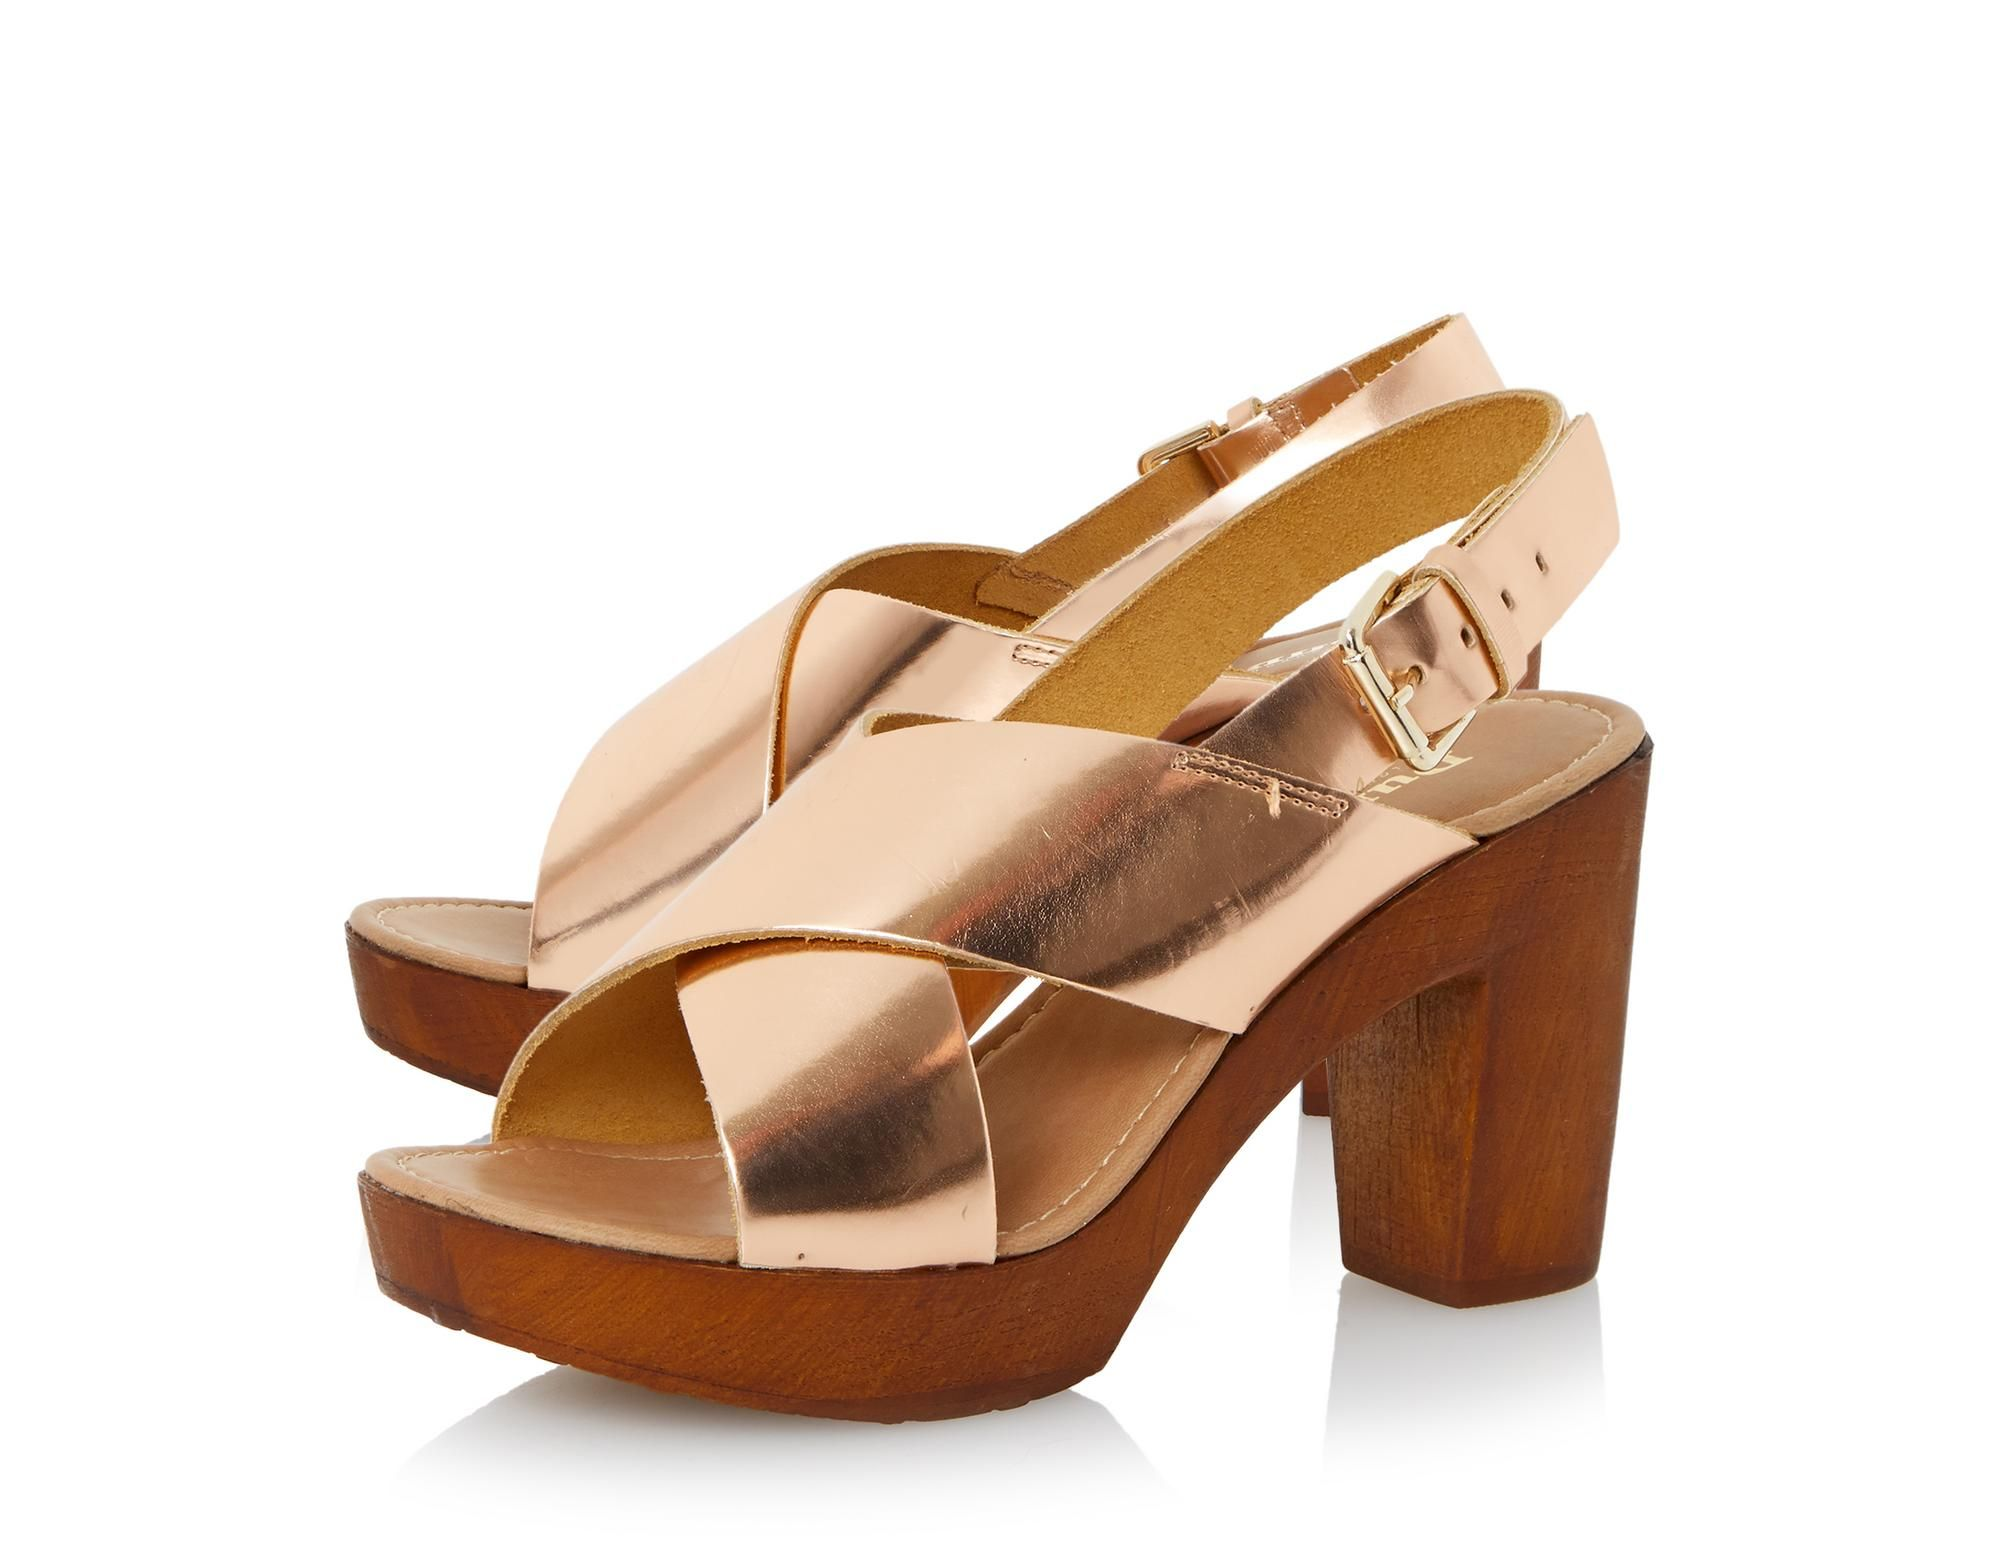 4a425731d DUNE LADIES FRAGGEL - Leather Wooden Clog Effect Heeled Sandal By Dune  London  dunelondon  dune  shoes  sandals  heels  70s  fashion  style